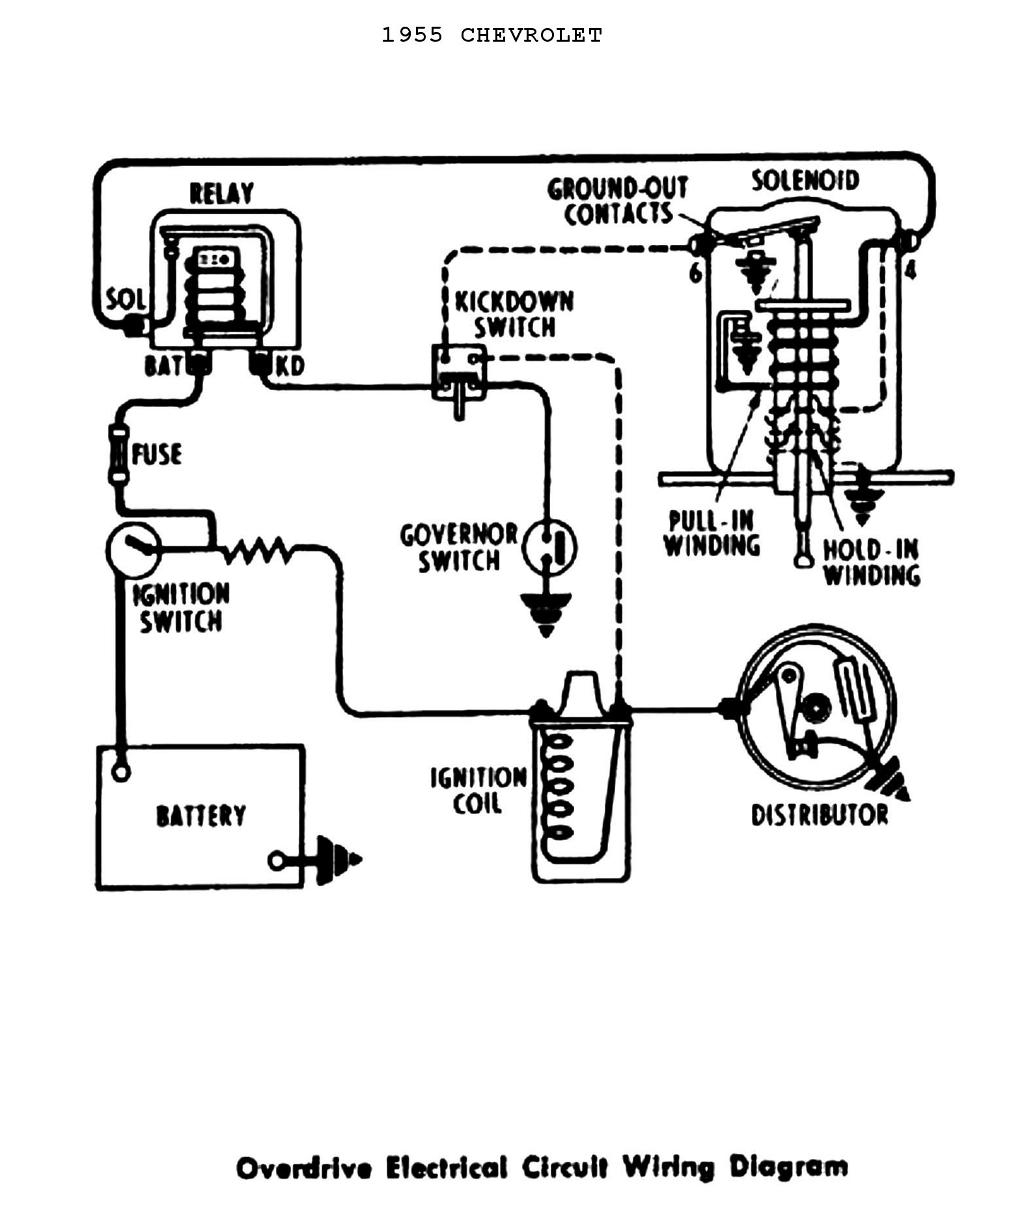 gm wire diagram 88 corvette